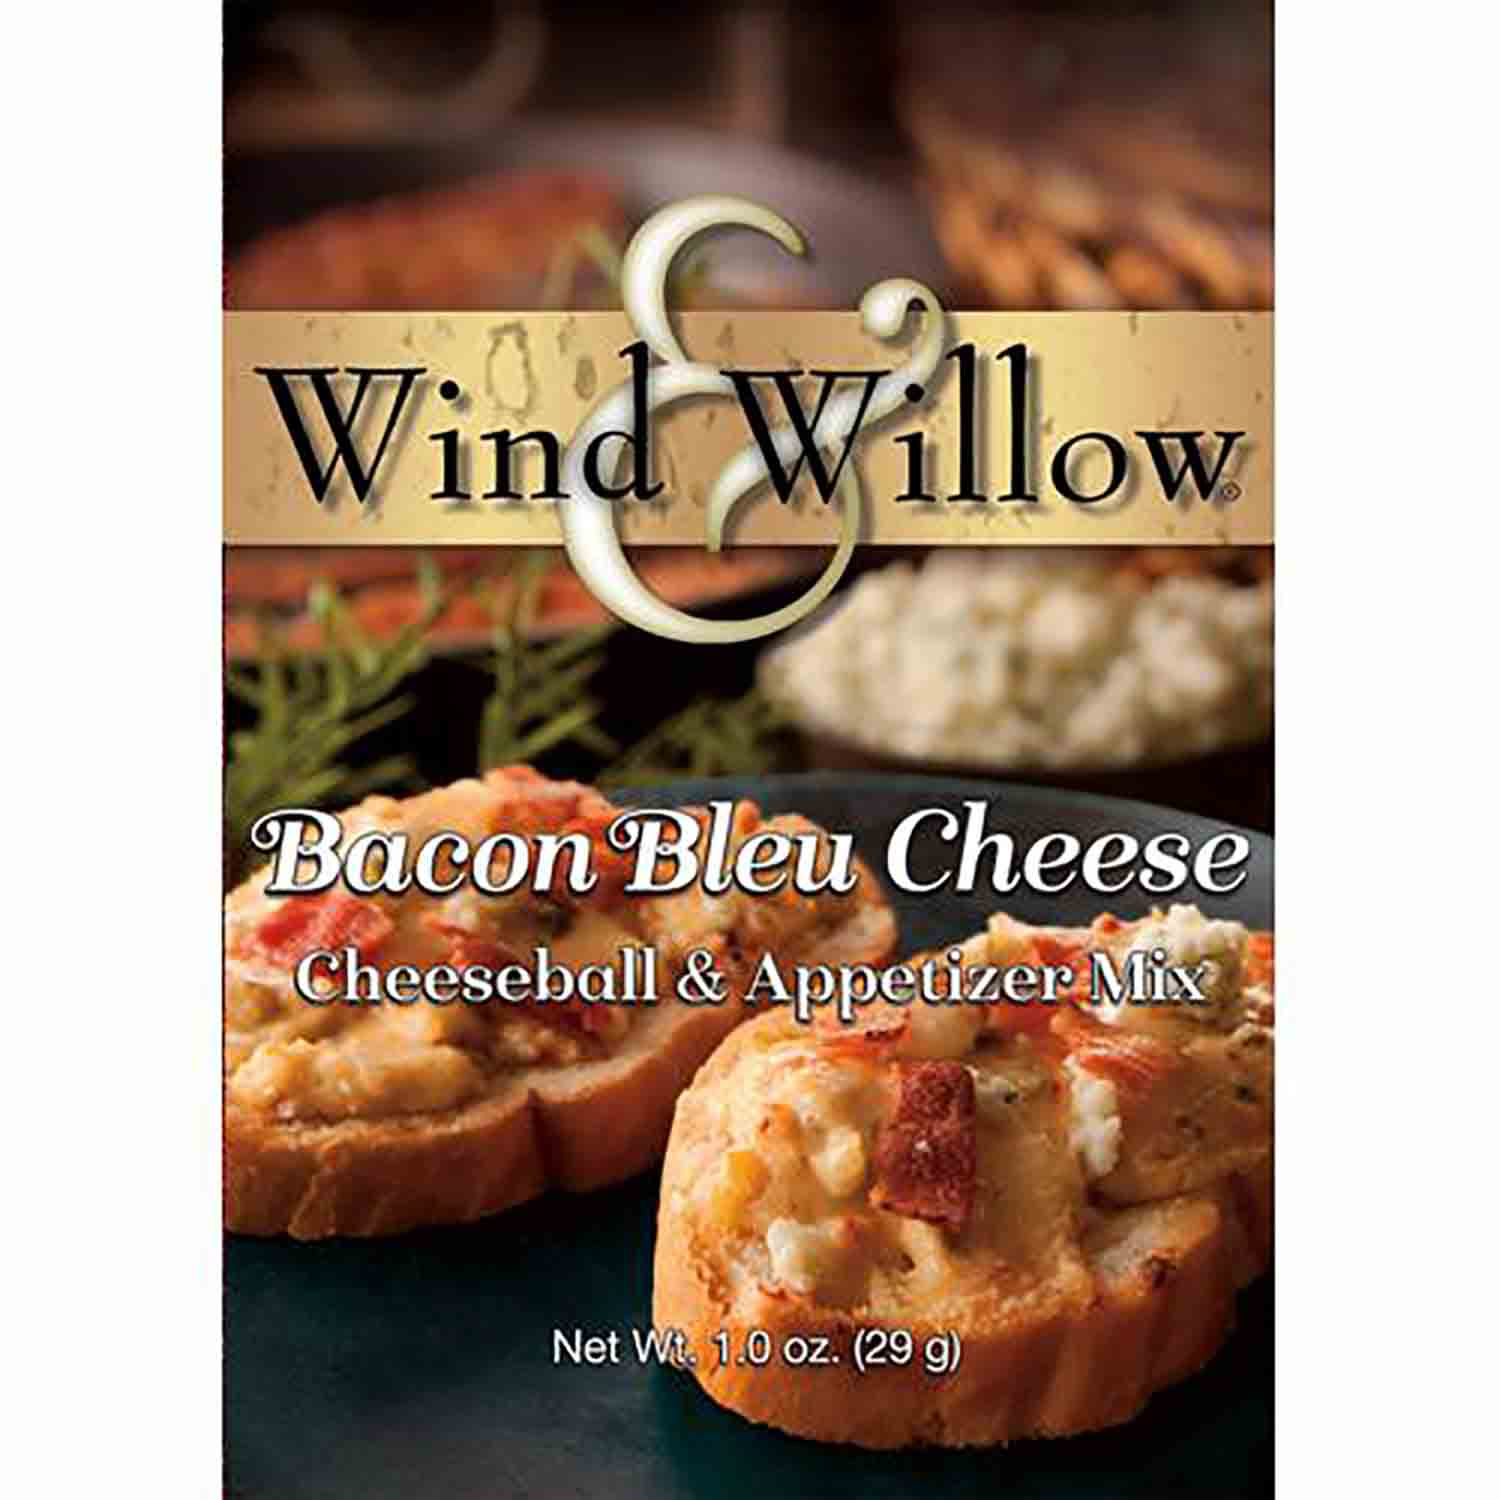 Bacon Bleu Cheese Wind & Willow Cheeseball Mix